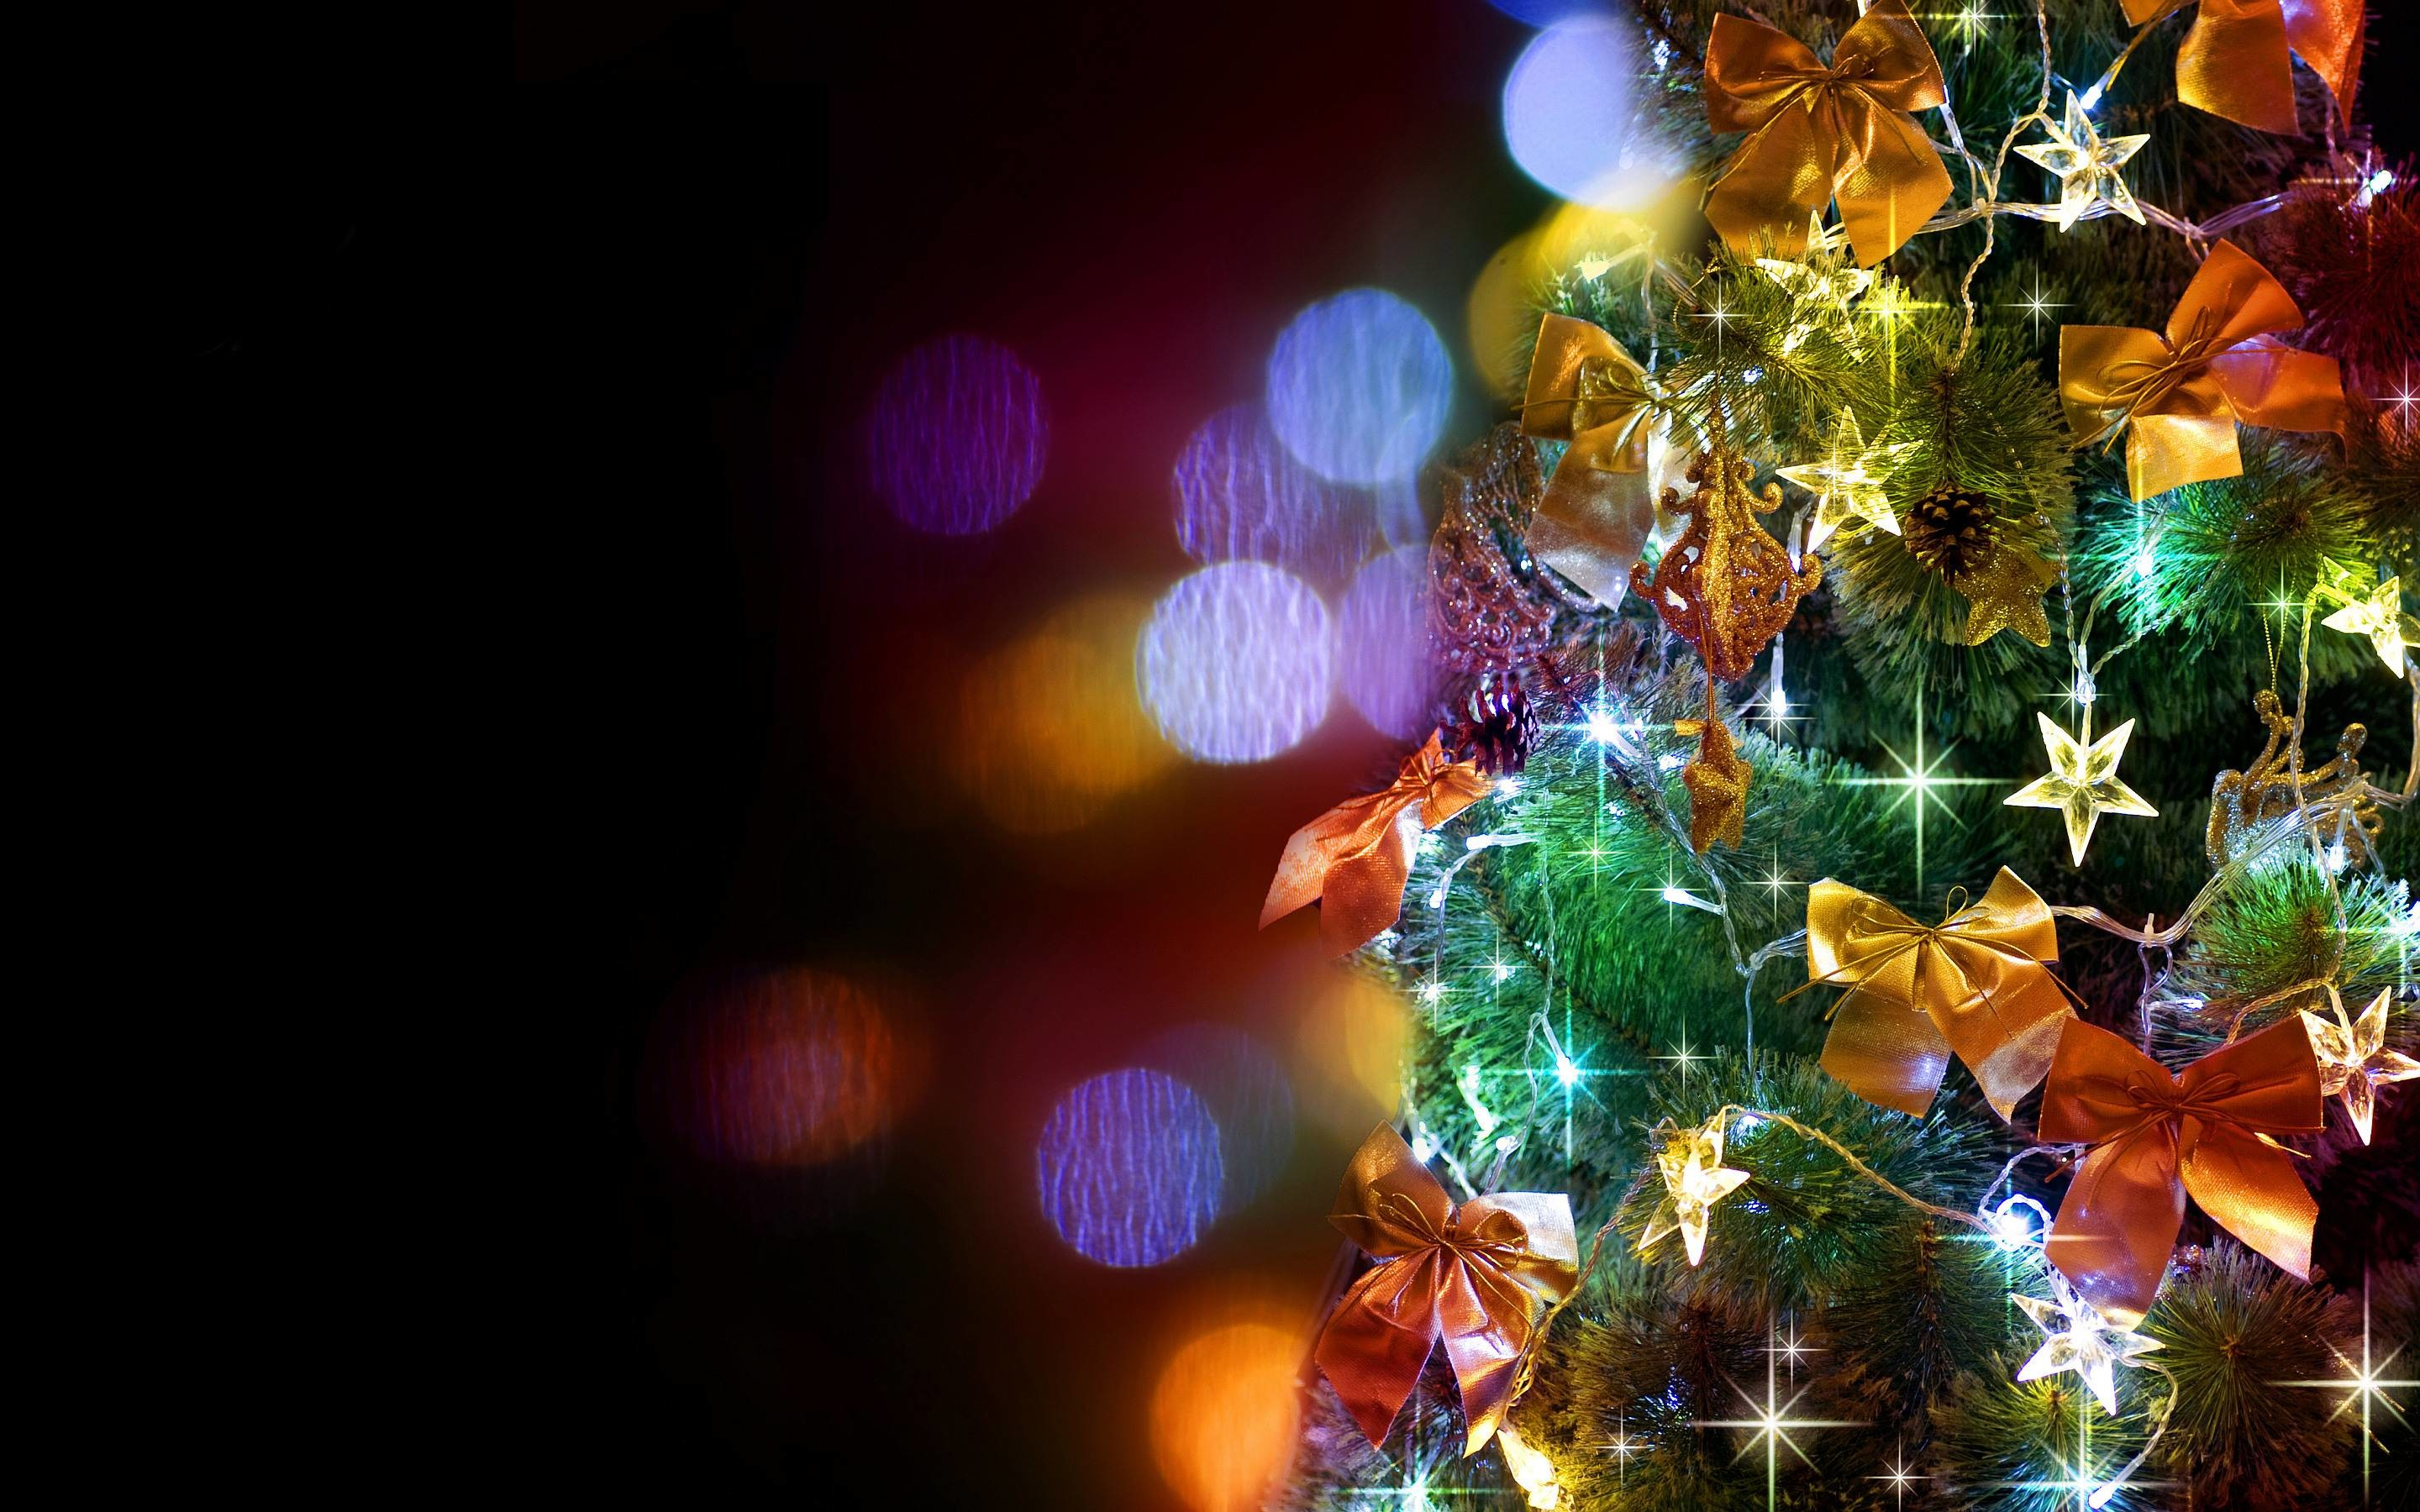 2880x1800 Christmas Tree Wallpaper For Iphone